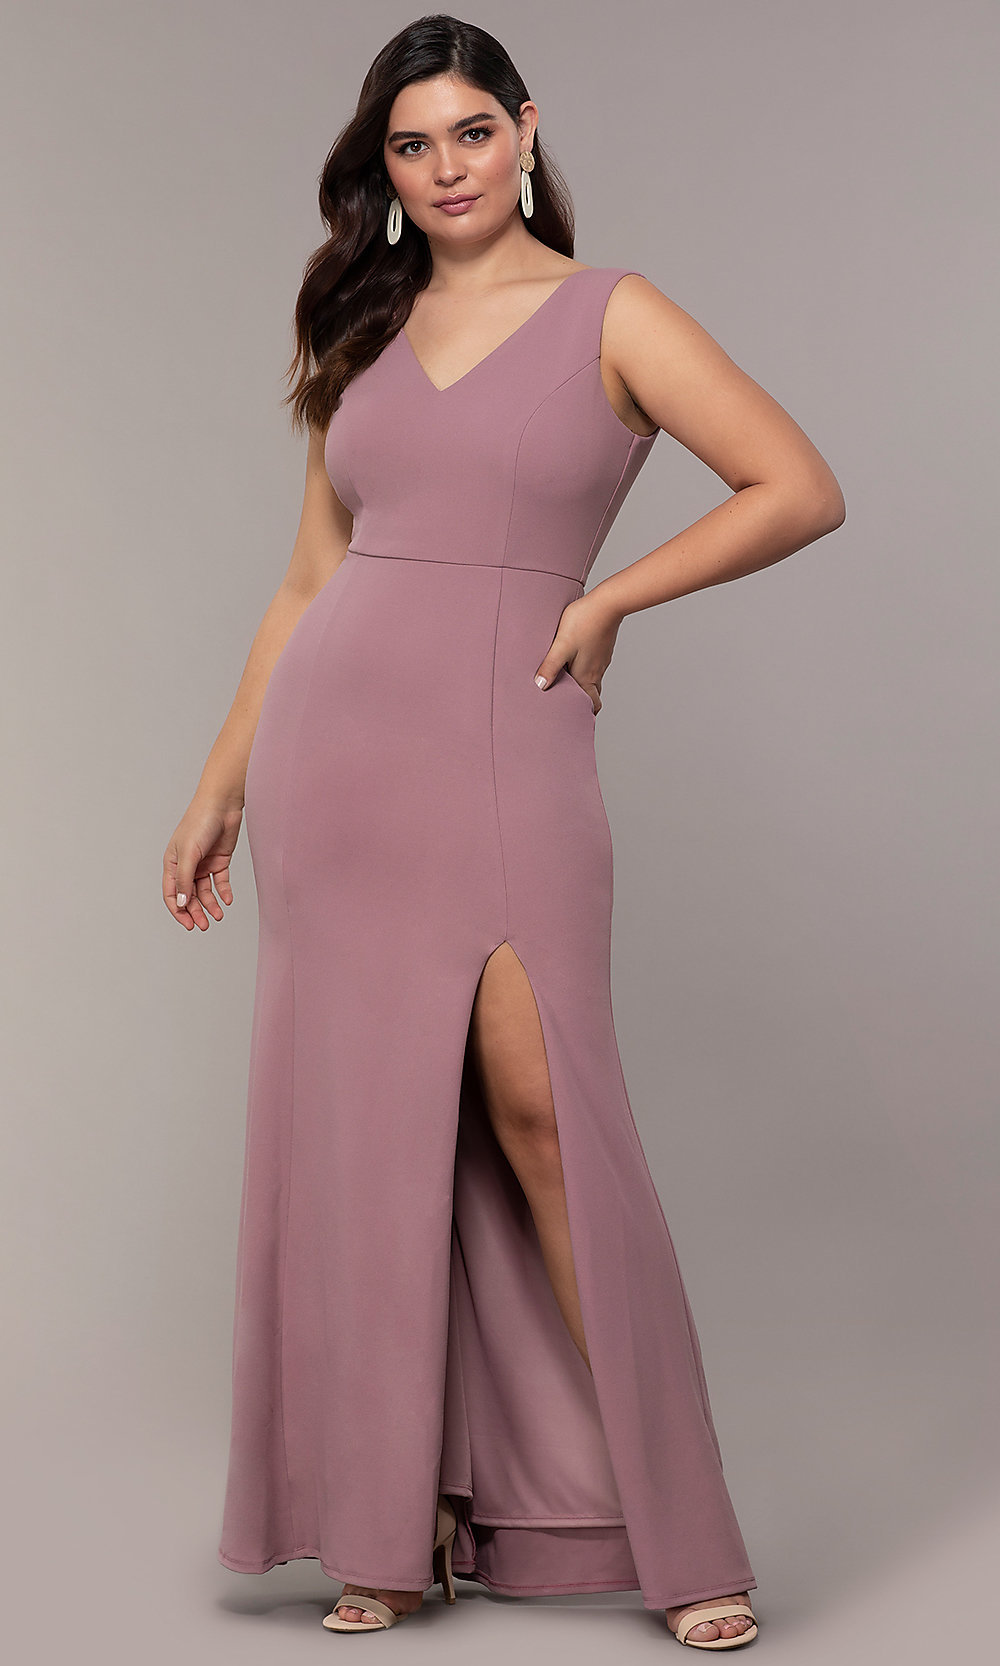 Simply Pink Long V-Neck Plus-Size Prom Dress -PromGirl